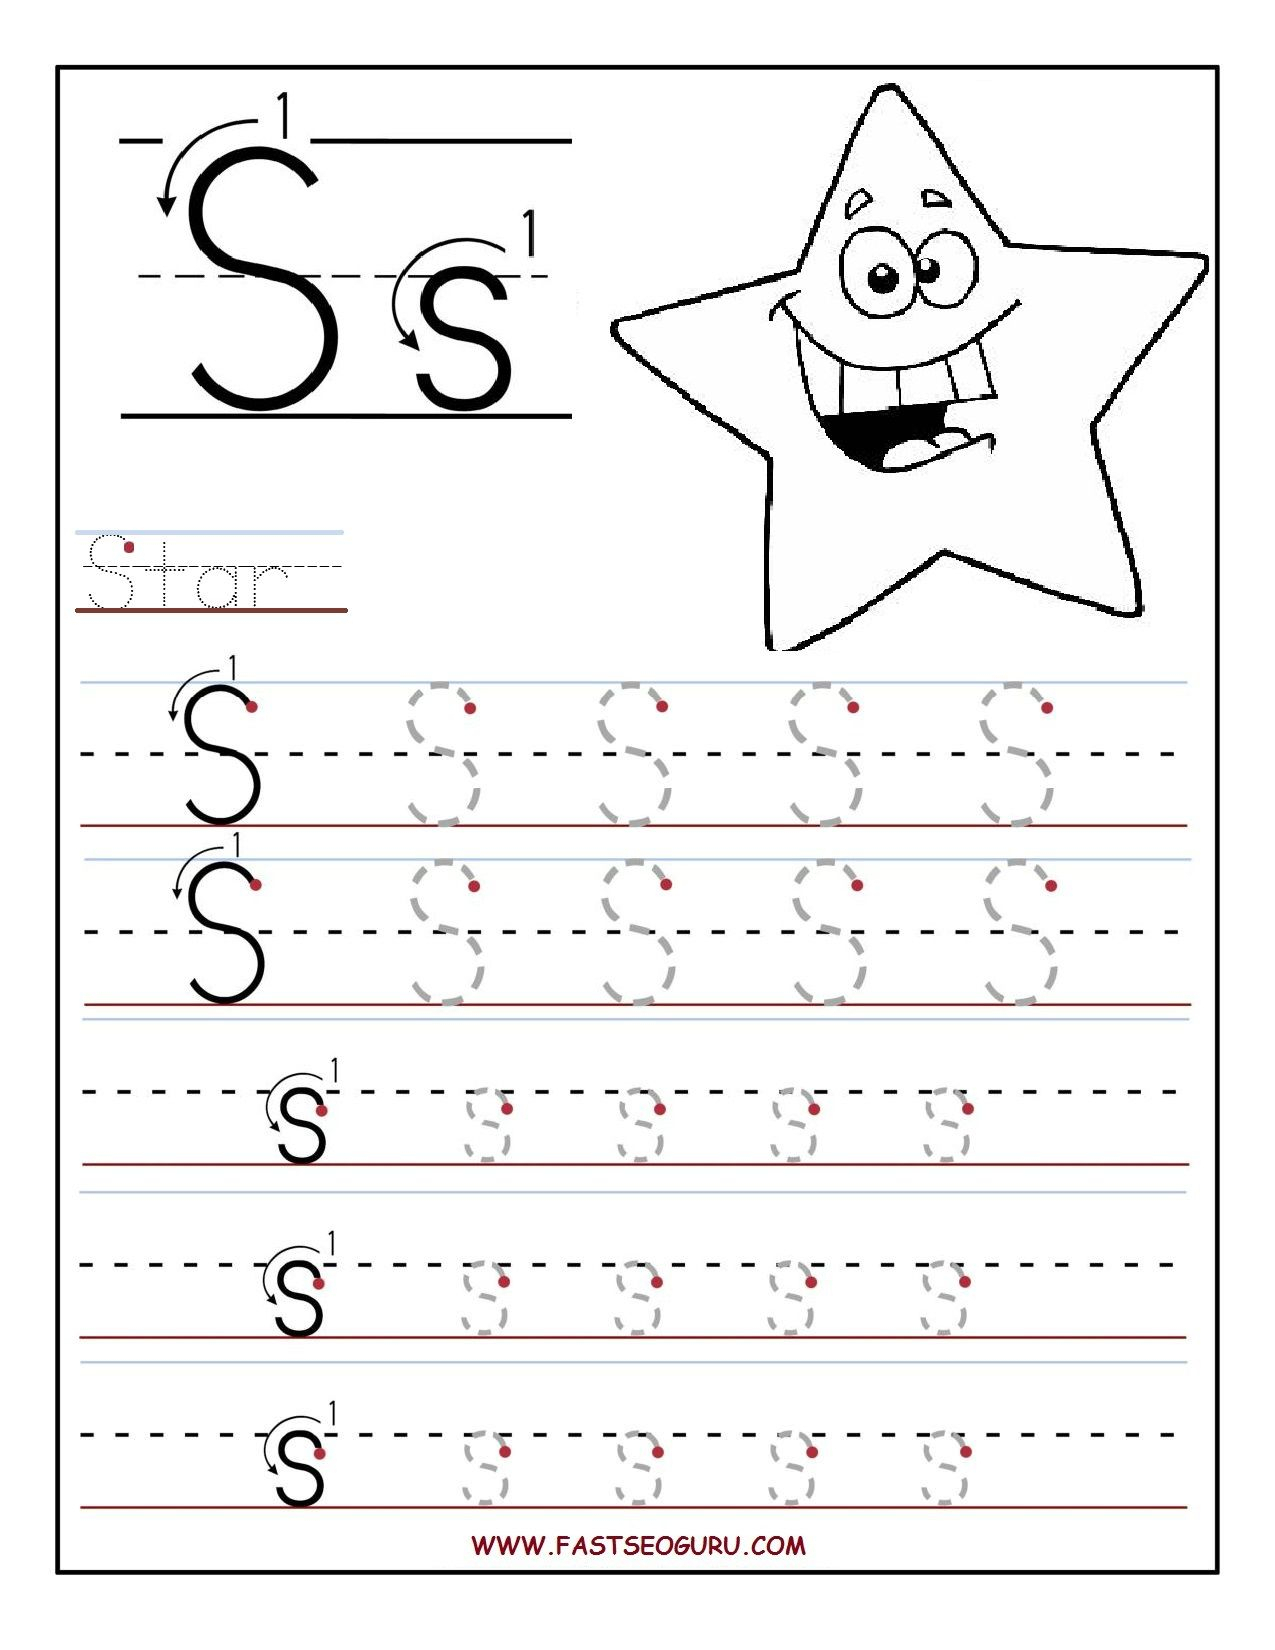 Printable Cursive Alphabet Worksheets Abitlikethis intended for Preschool Tracing Letters Free Worksheets